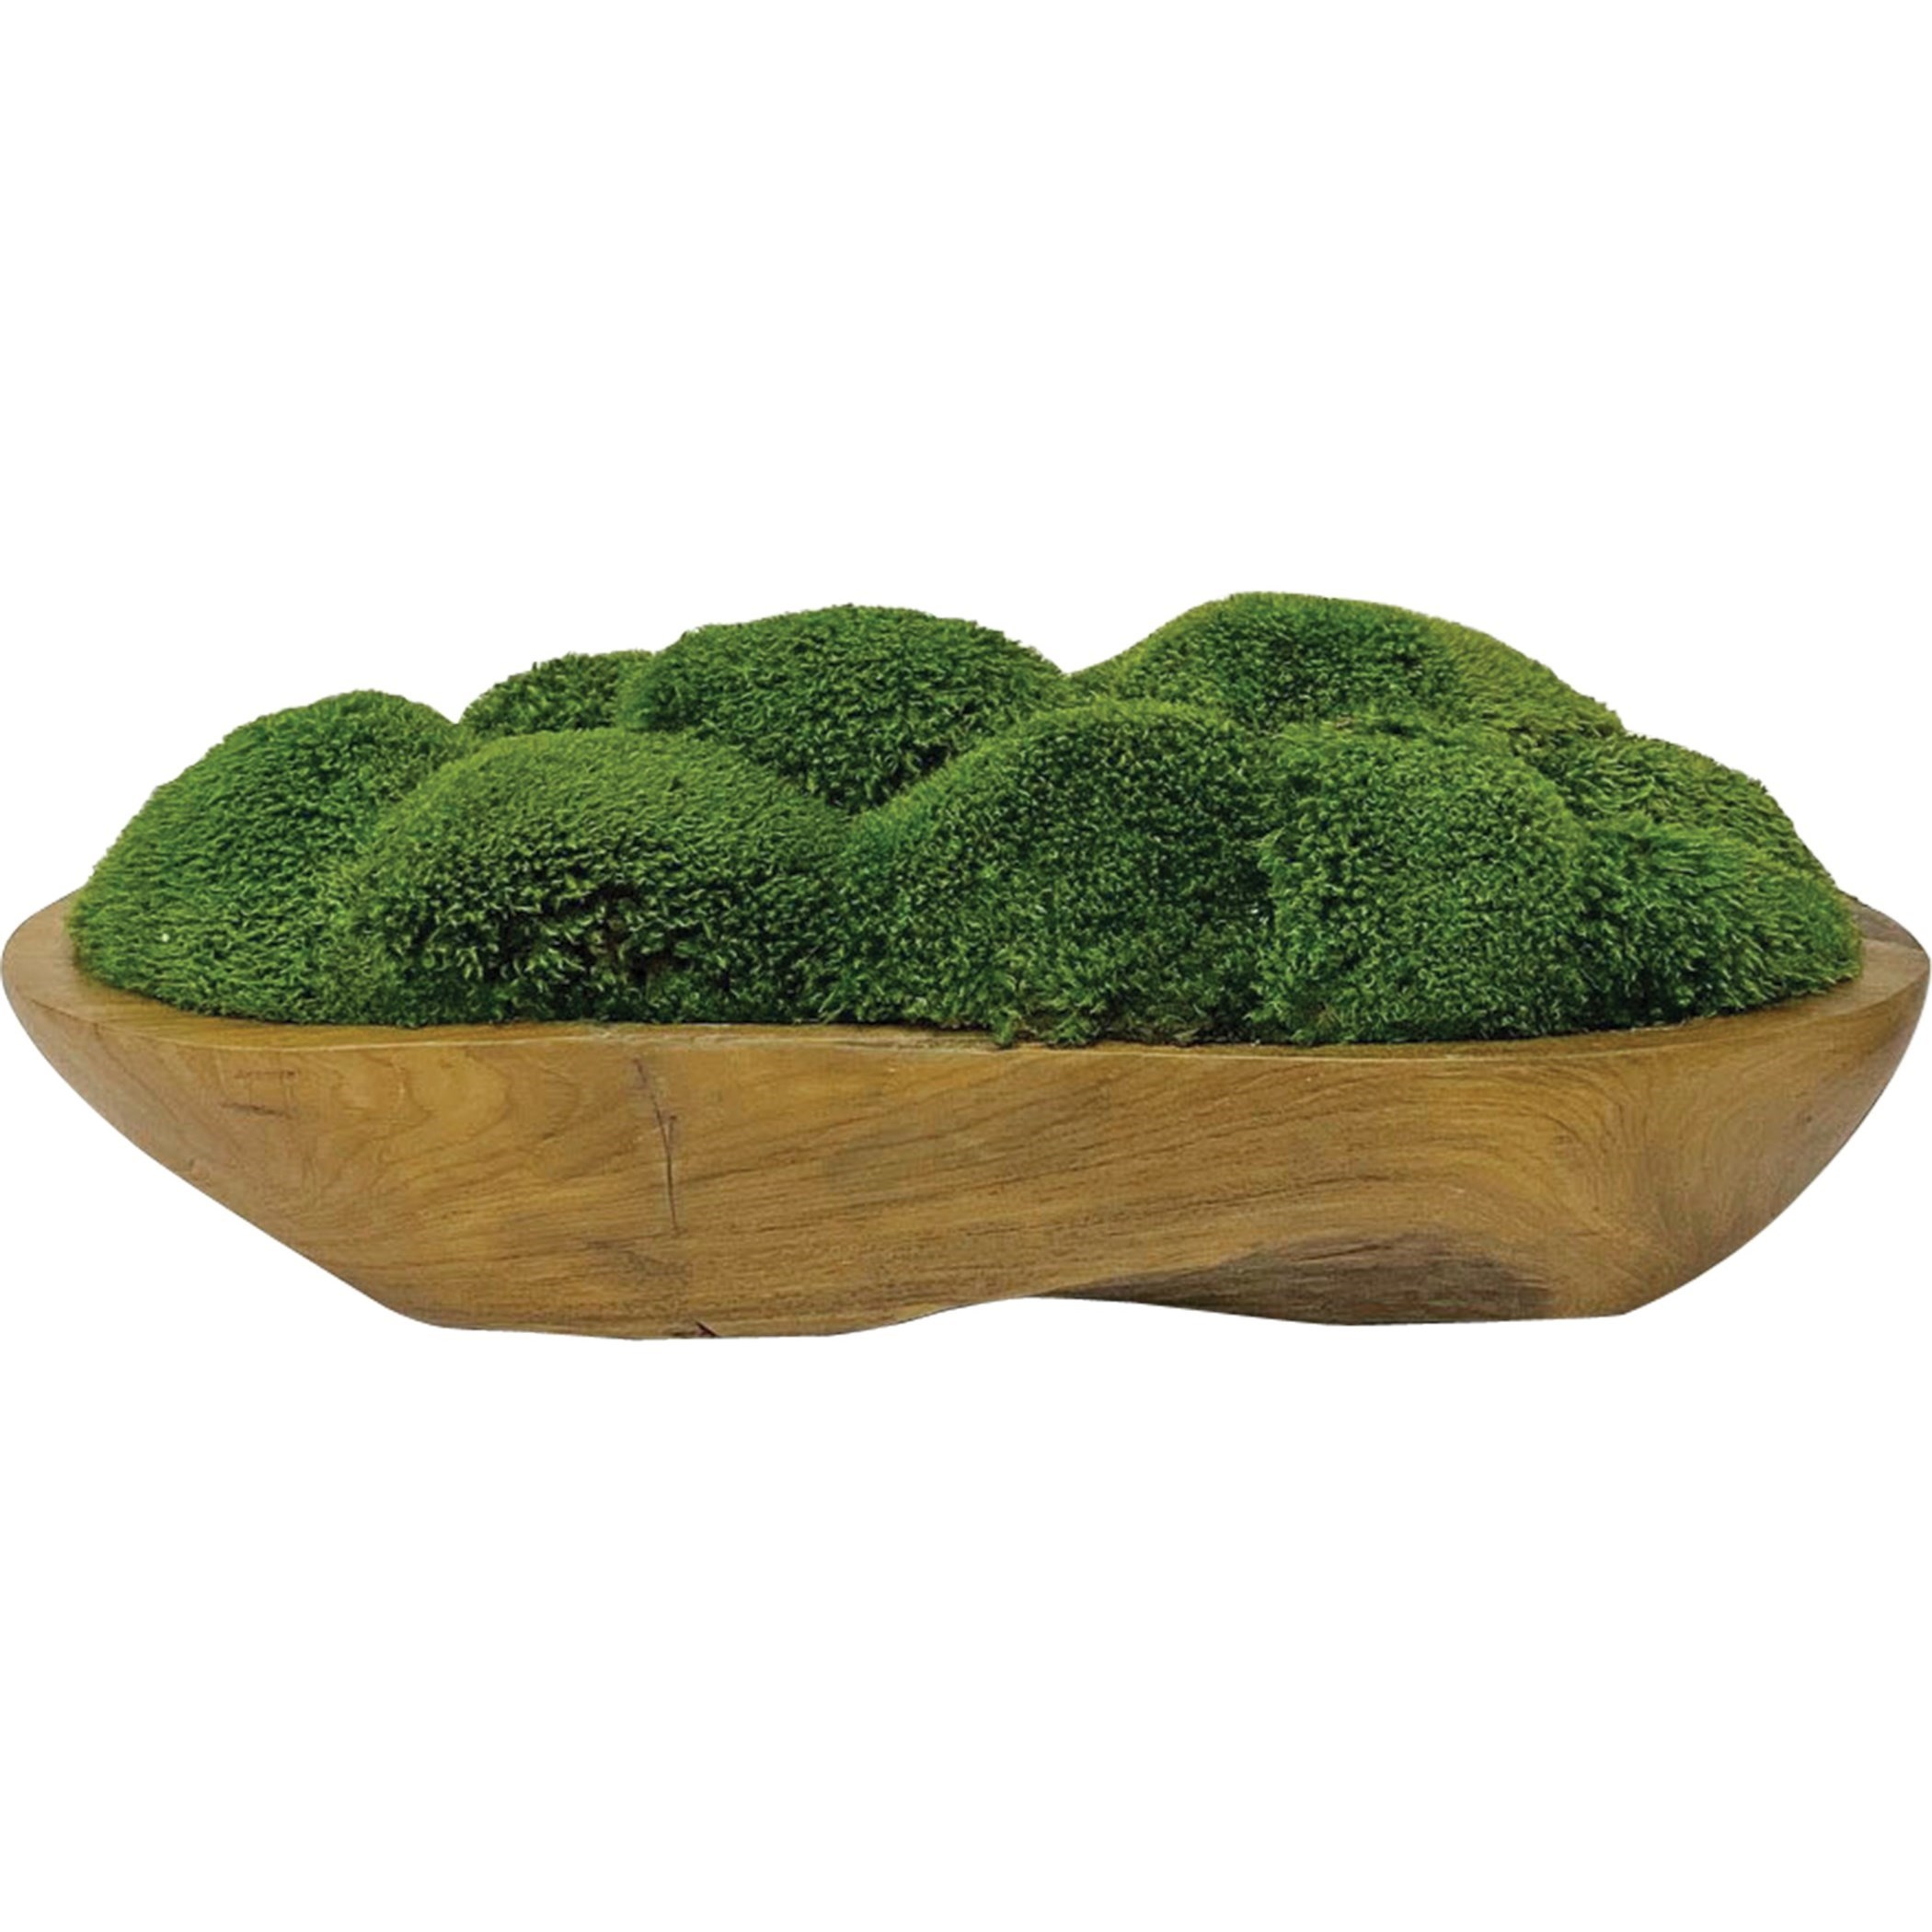 Accessories Kinsale Moss Centerpiece by Uttermost at Dunk & Bright Furniture